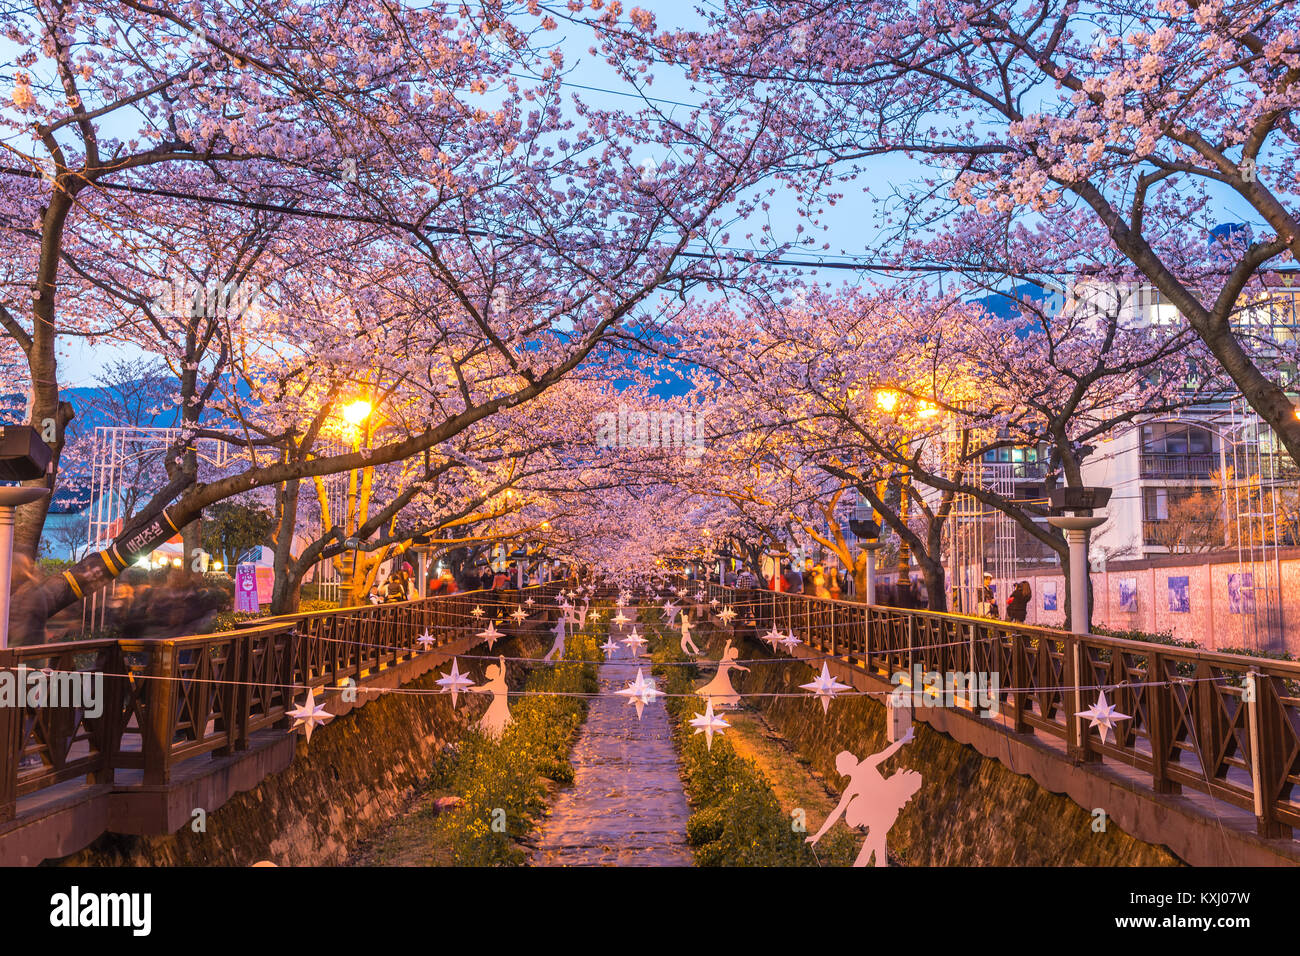 Spring Cherry blossom festival at Yeojwacheon Stream at night, Jinhae, South Korea - Stock Image